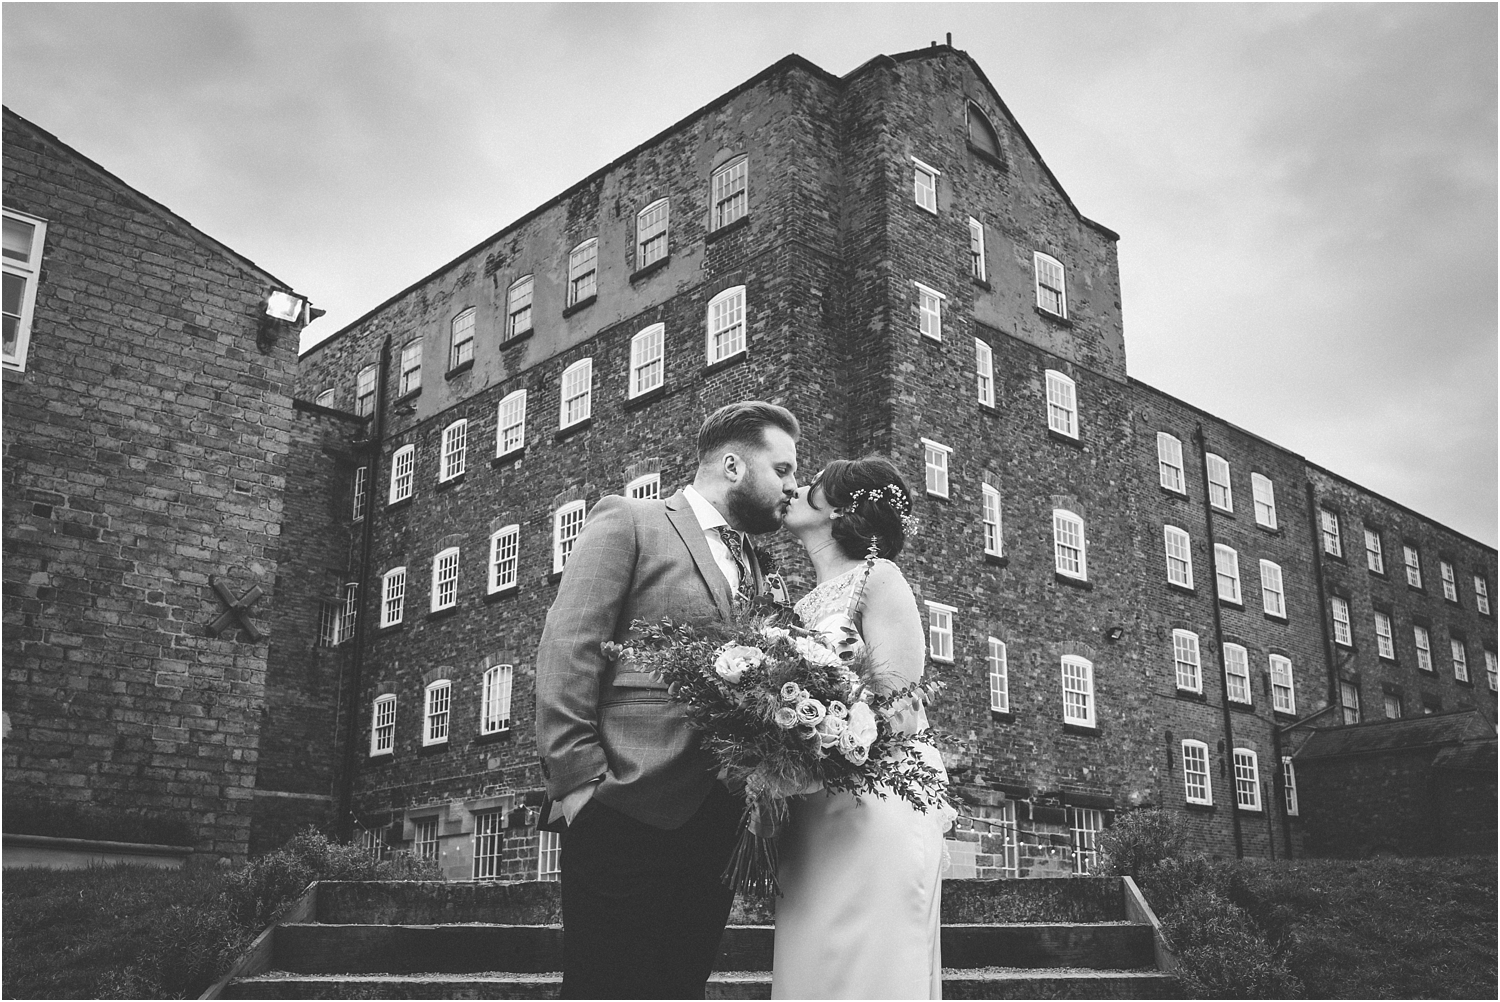 Victoria-Ben-The-West-Mill-darley-abbey-natural-relaxed-documentary-wedding-photography-photographer-Derby-Nottingham-Derbyshire-Nottinghamshire-Leicestershire-Lincolnshire-East-Midlands_0077.jpg